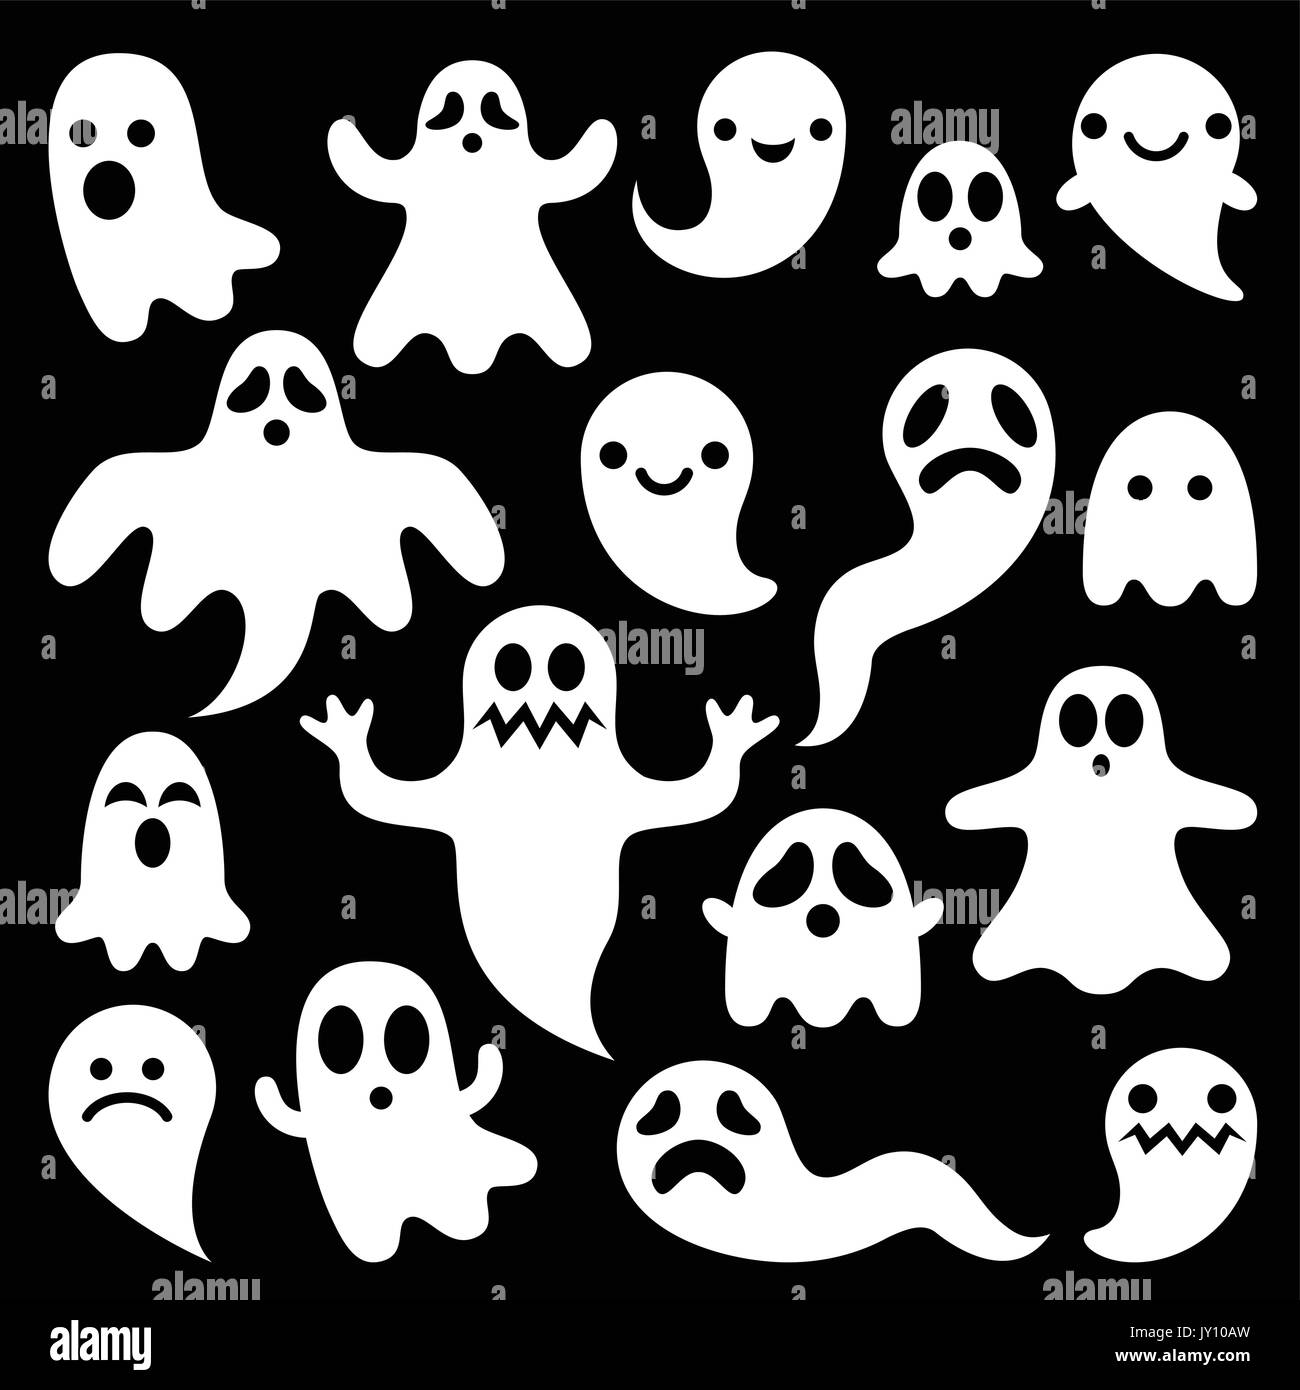 Cartoon Ghost High Resolution Stock Photography And Images Alamy